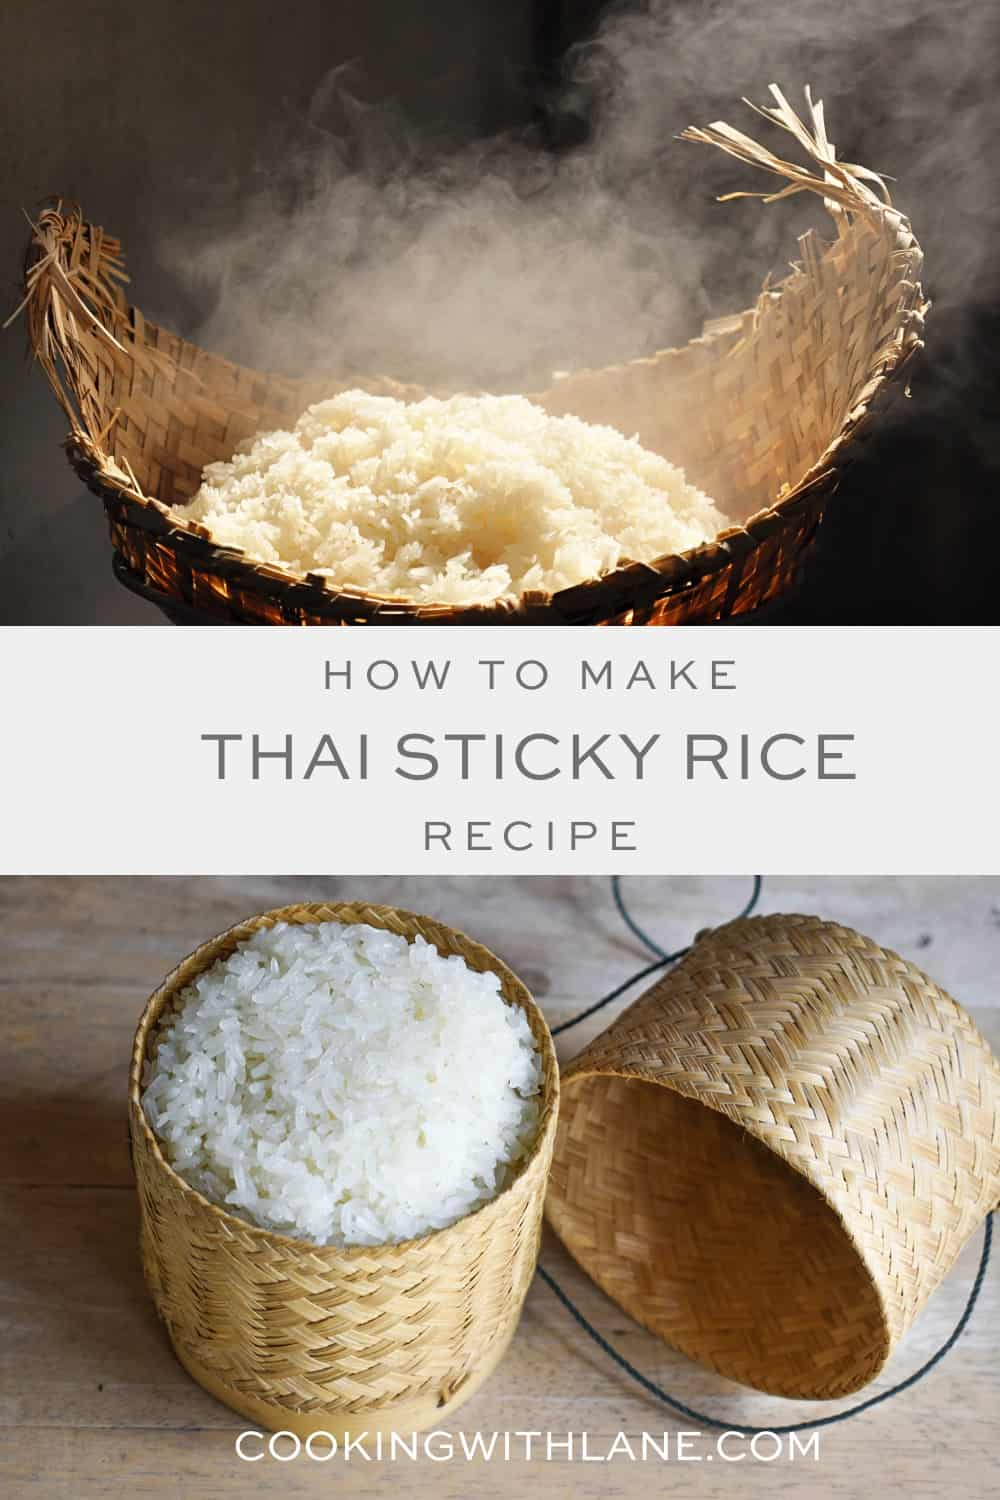 Sticky rice from Laos and Thailand